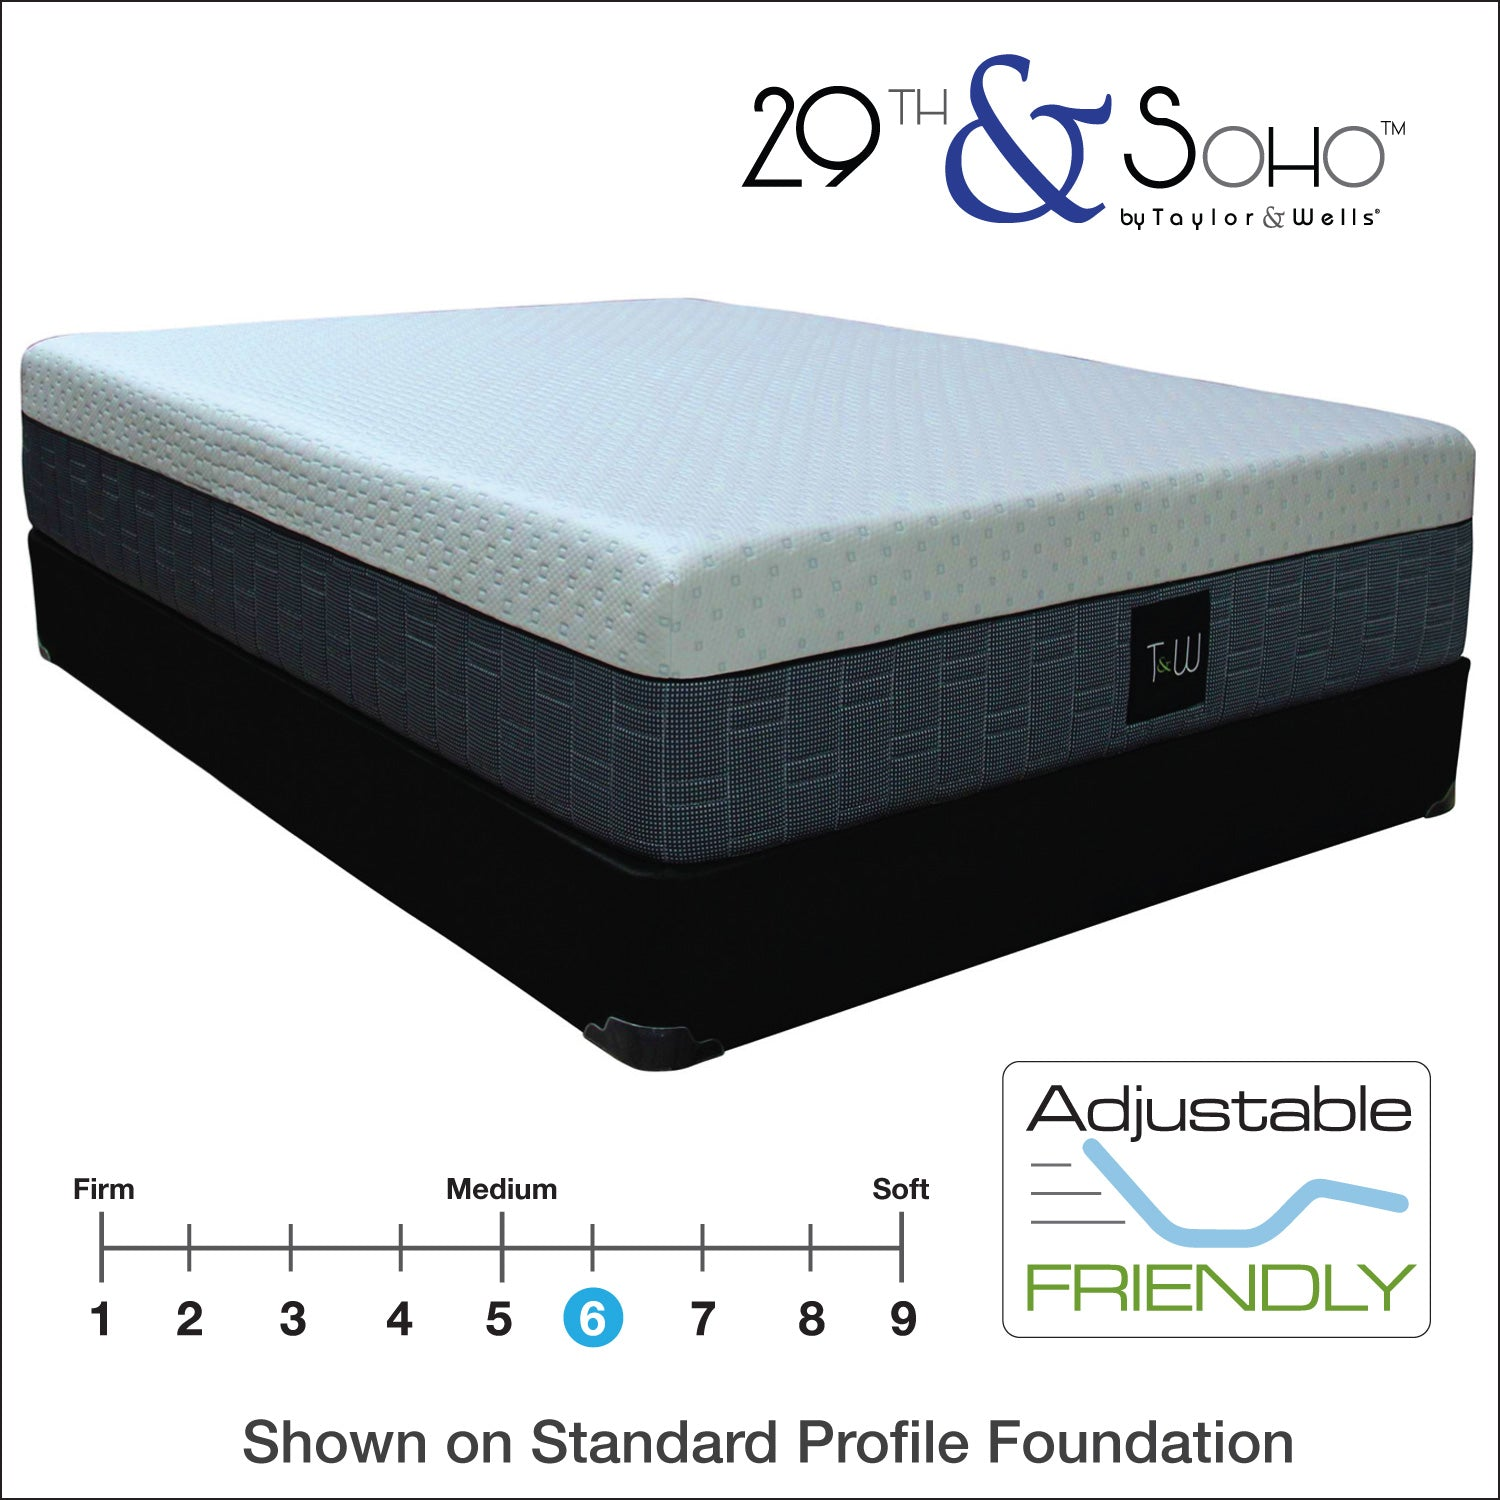 "29th & Soho 29|14 Comfort Plush 14"" Mattress"